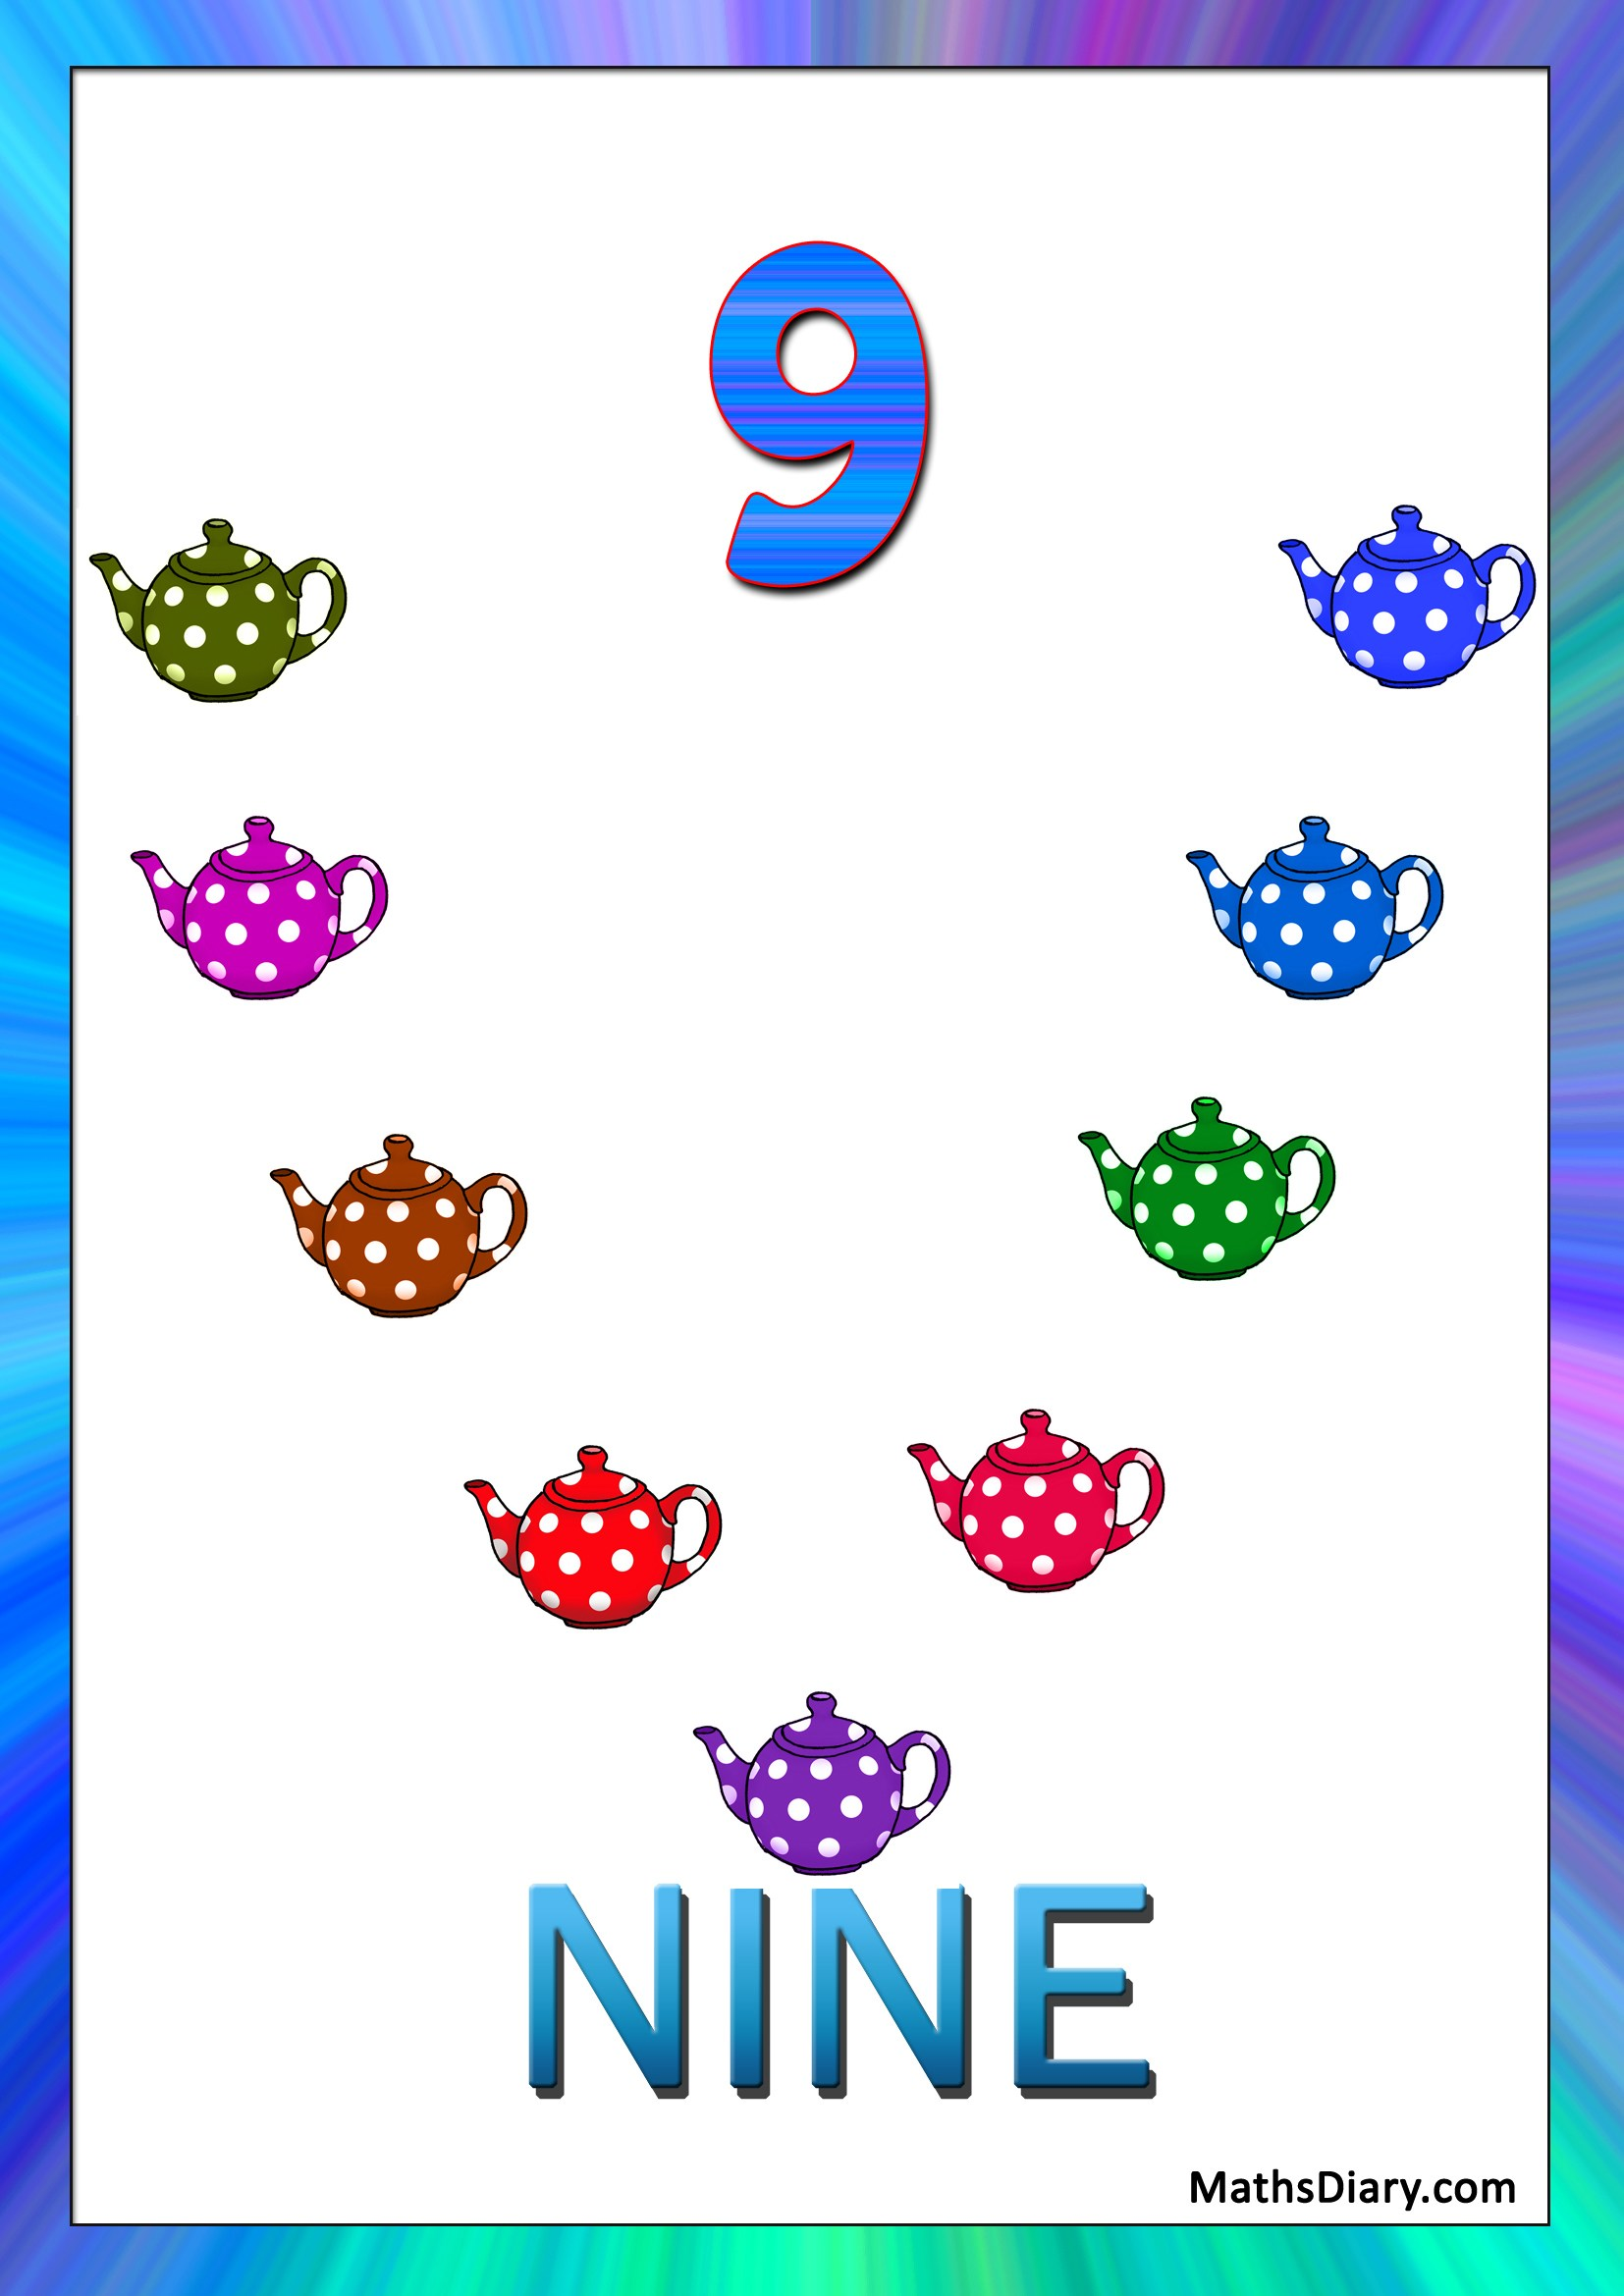 Learning Counting And Recognition Of Number 9 Level 2